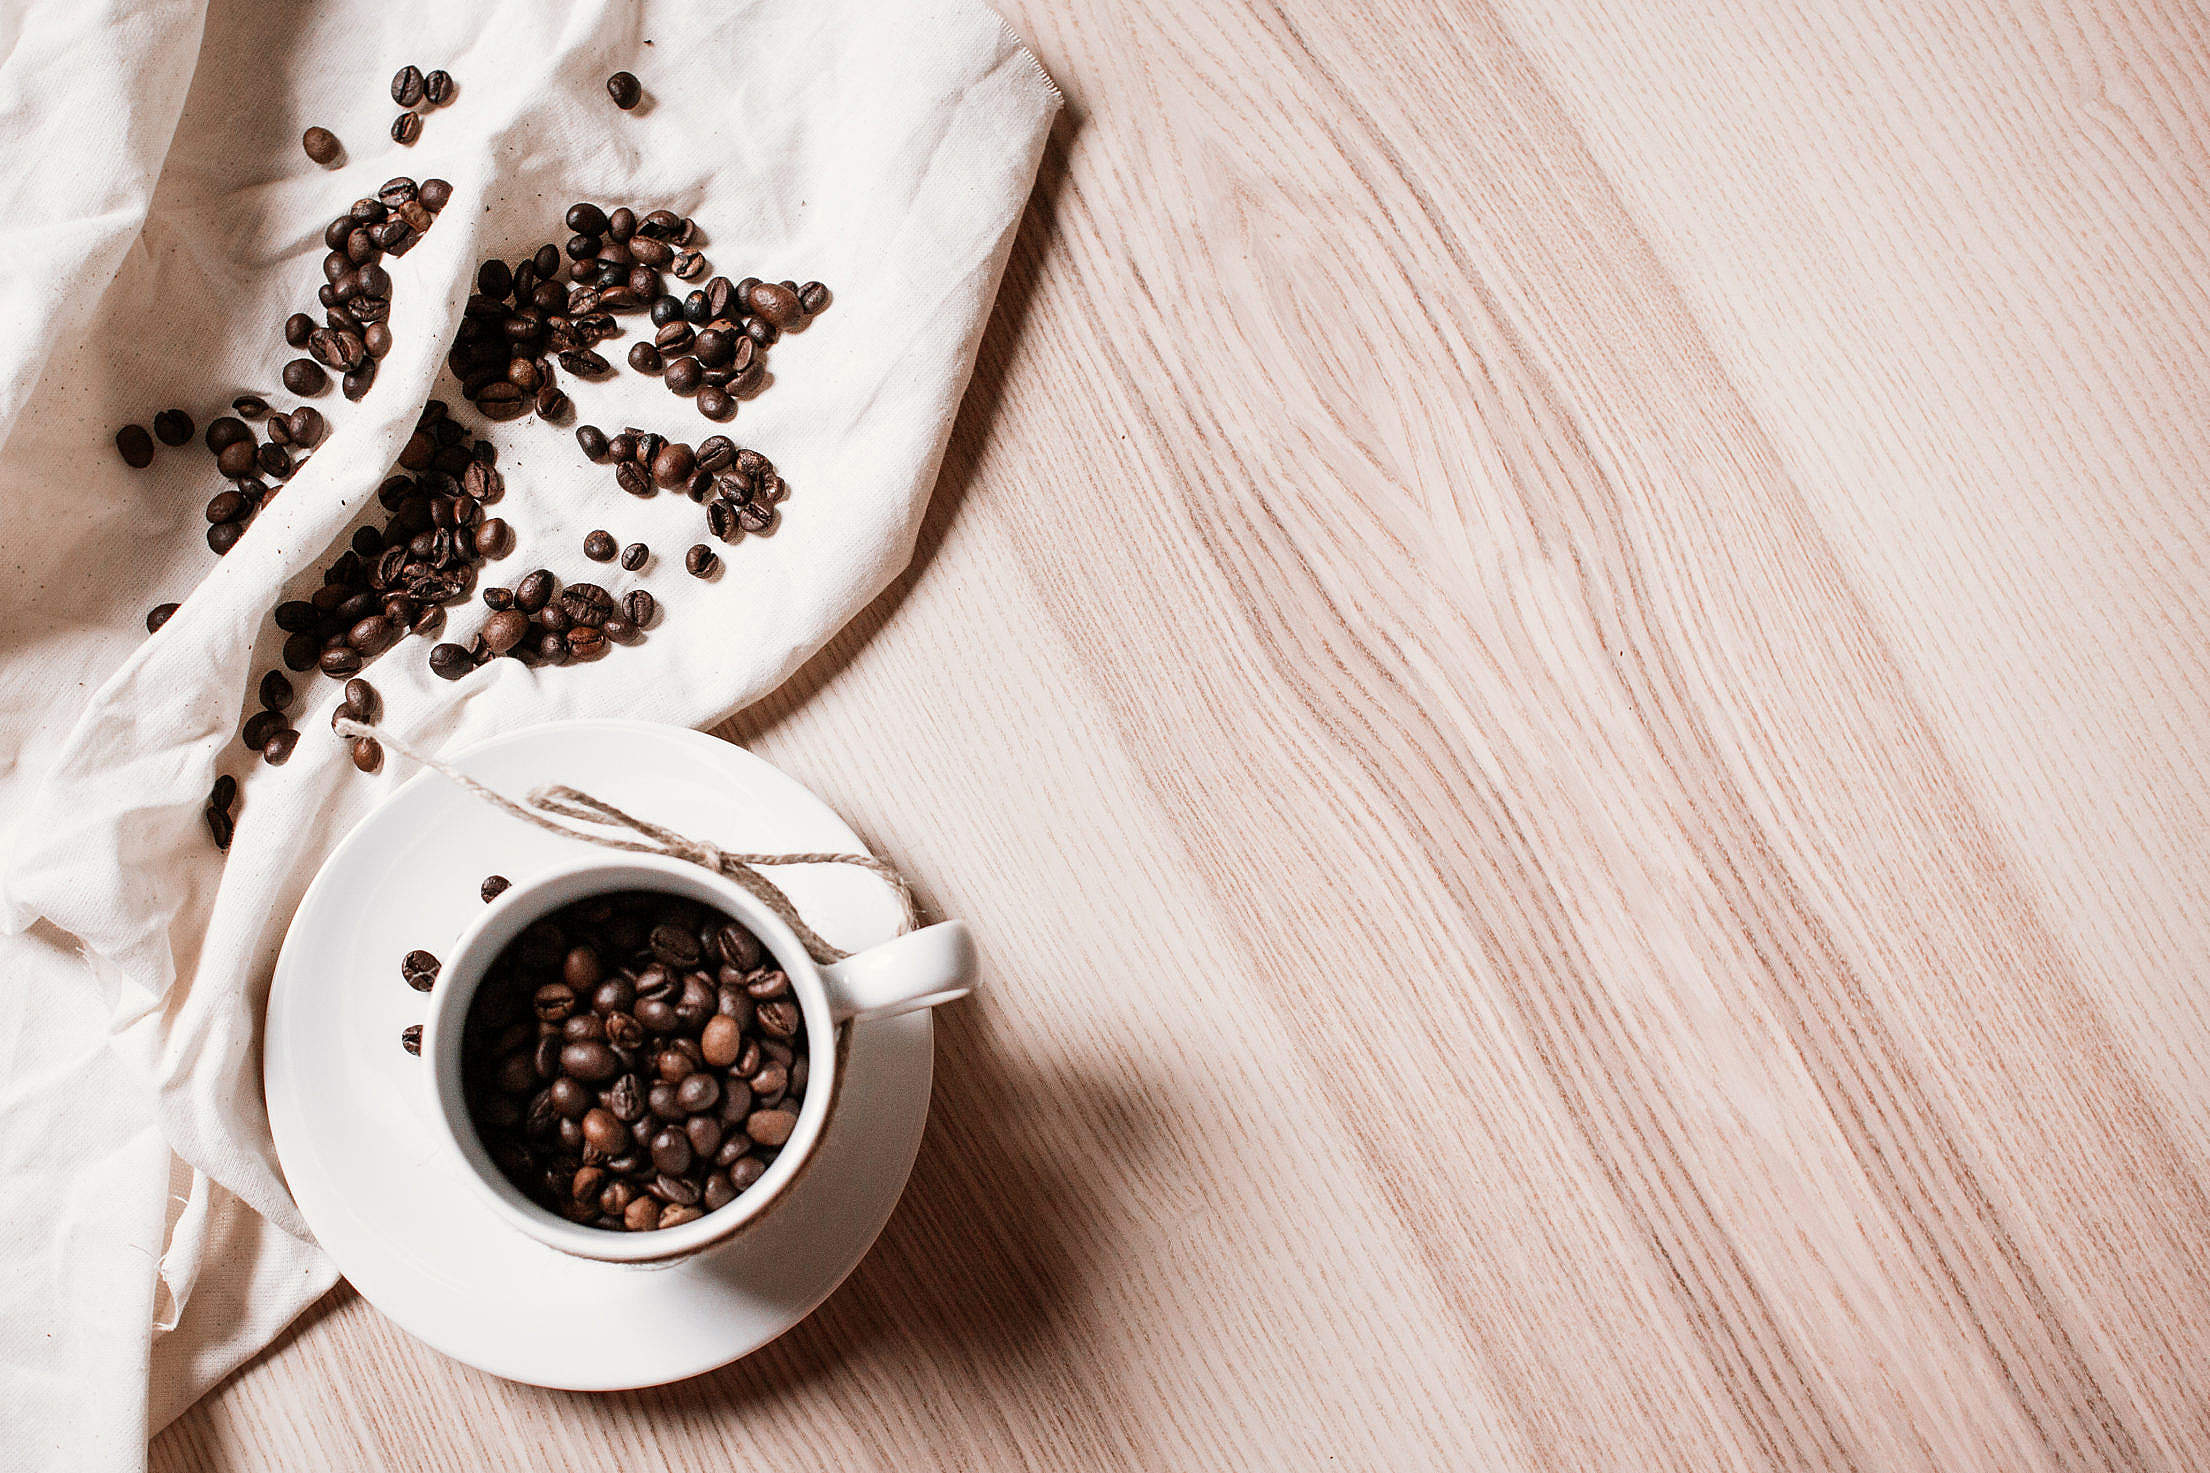 Coffee Beans in a Coffee Cup Free Stock Photo